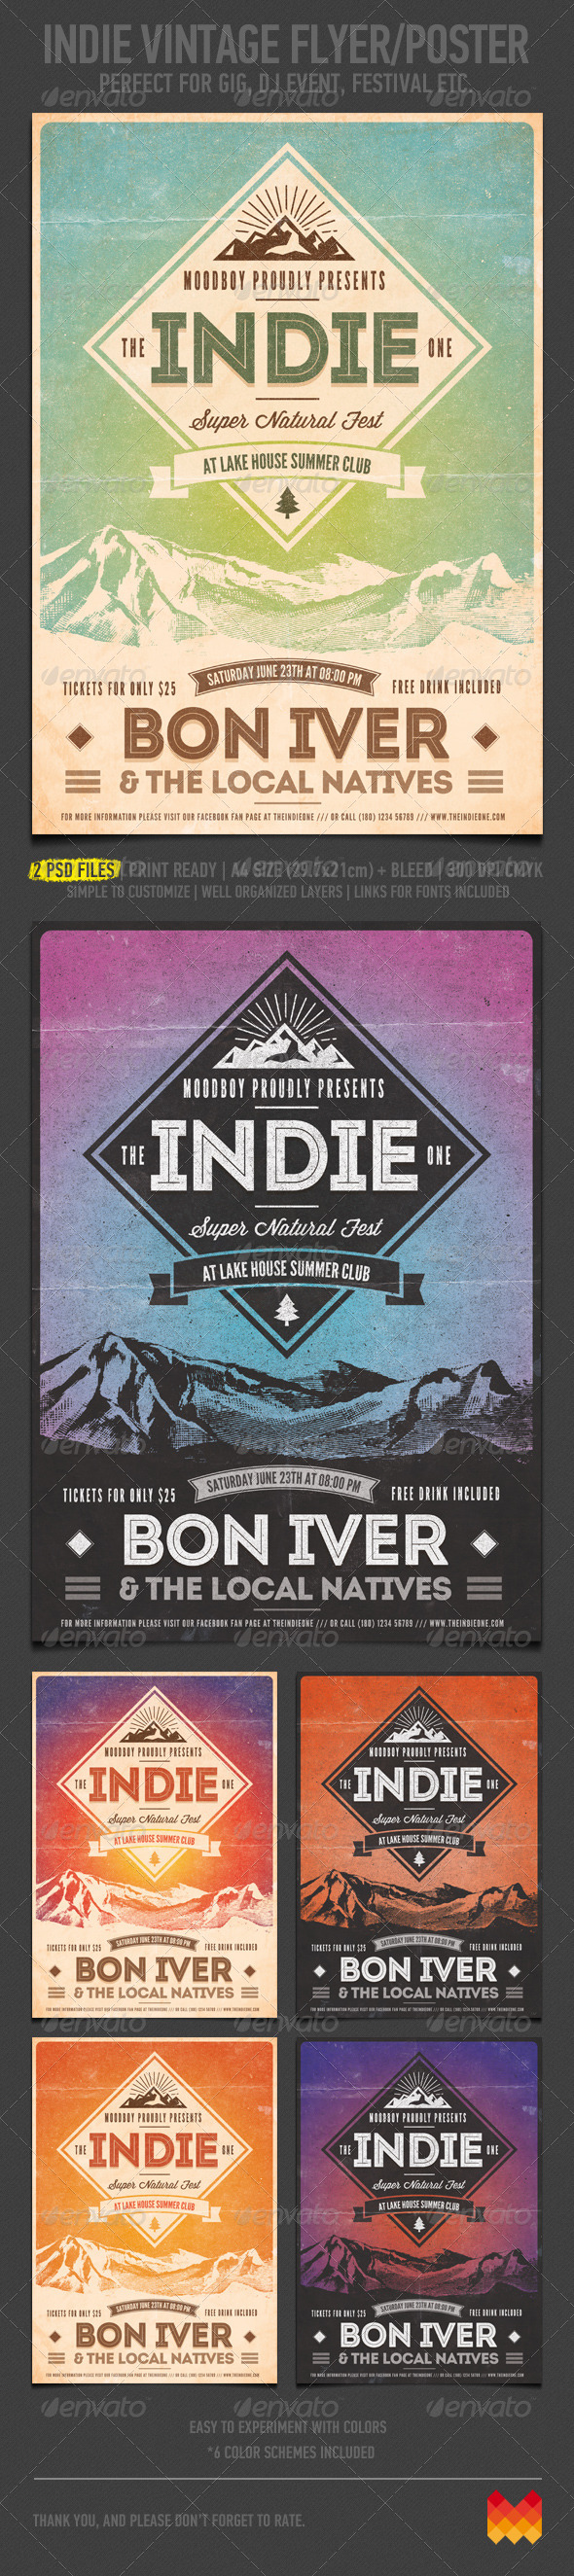 GraphicRiver Indie Vintage Flyer Poster 4705761